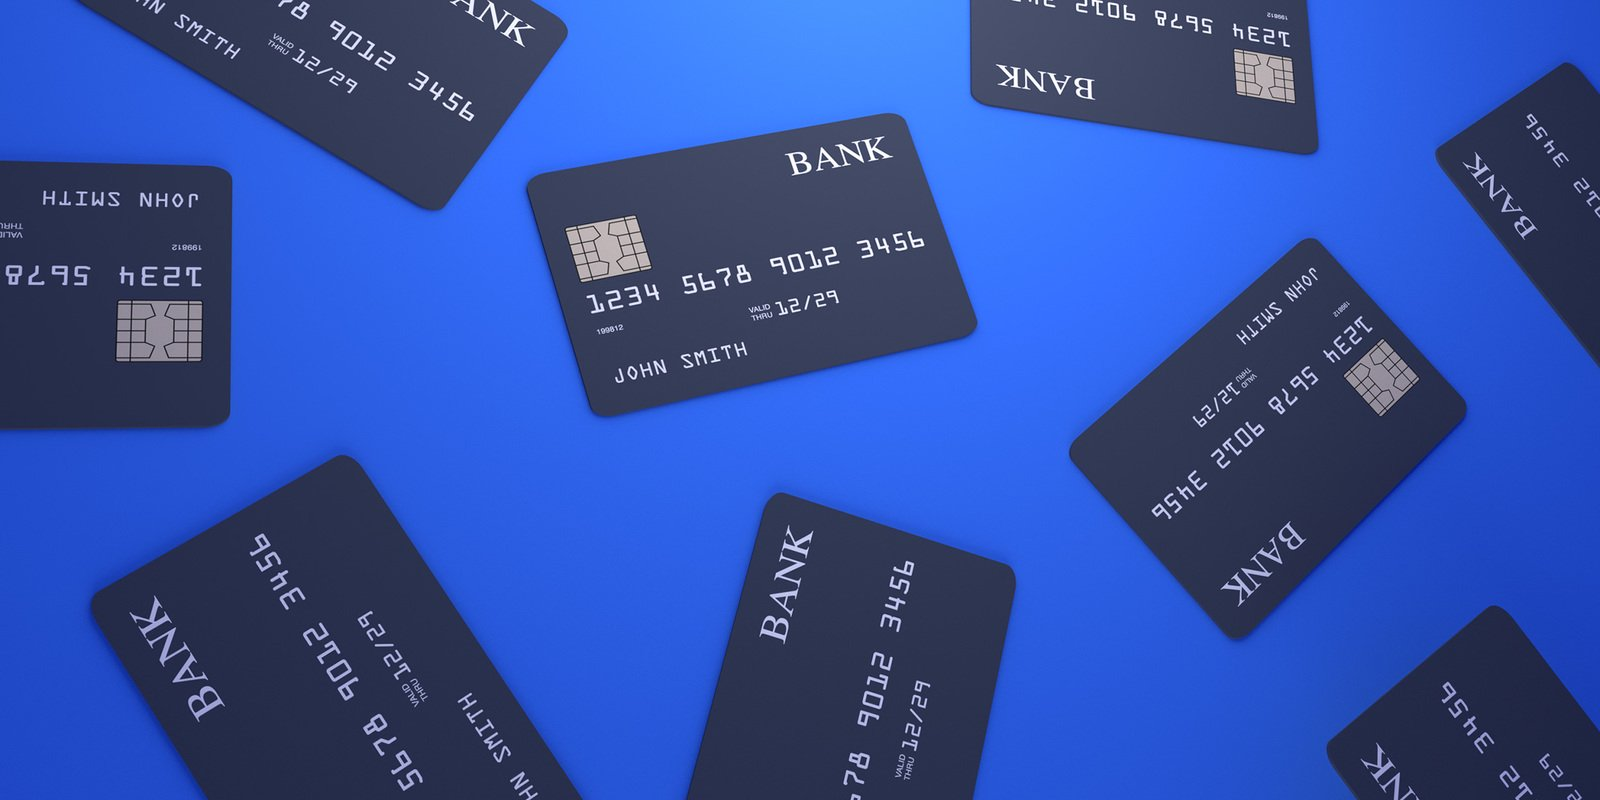 Kostenloses Free Credit Card Render Photos Freeimages Com